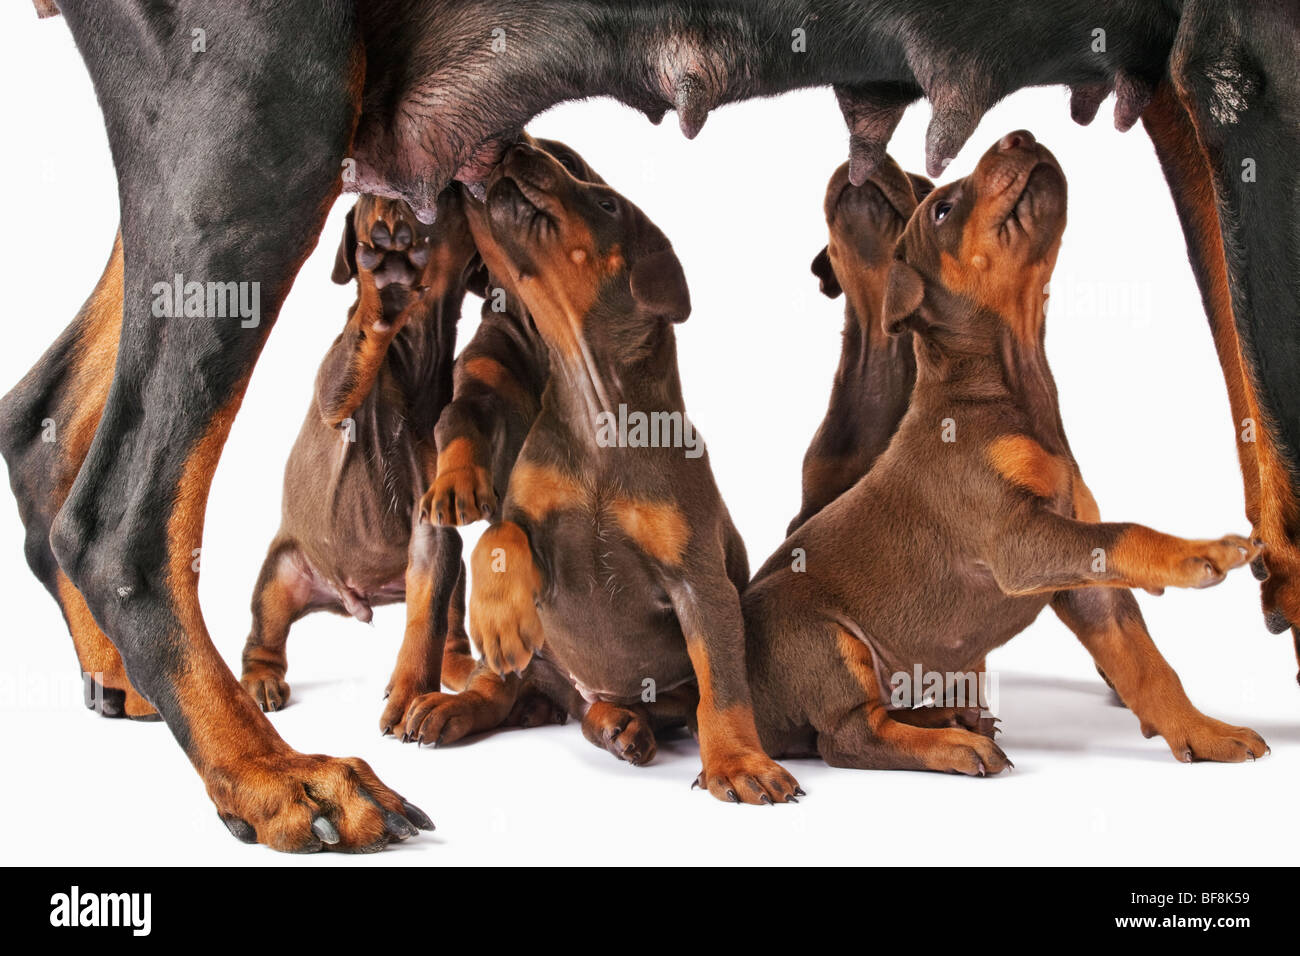 Doberman Pincher. Medium-sized domestic dog with a litter of puppies - Stock Image